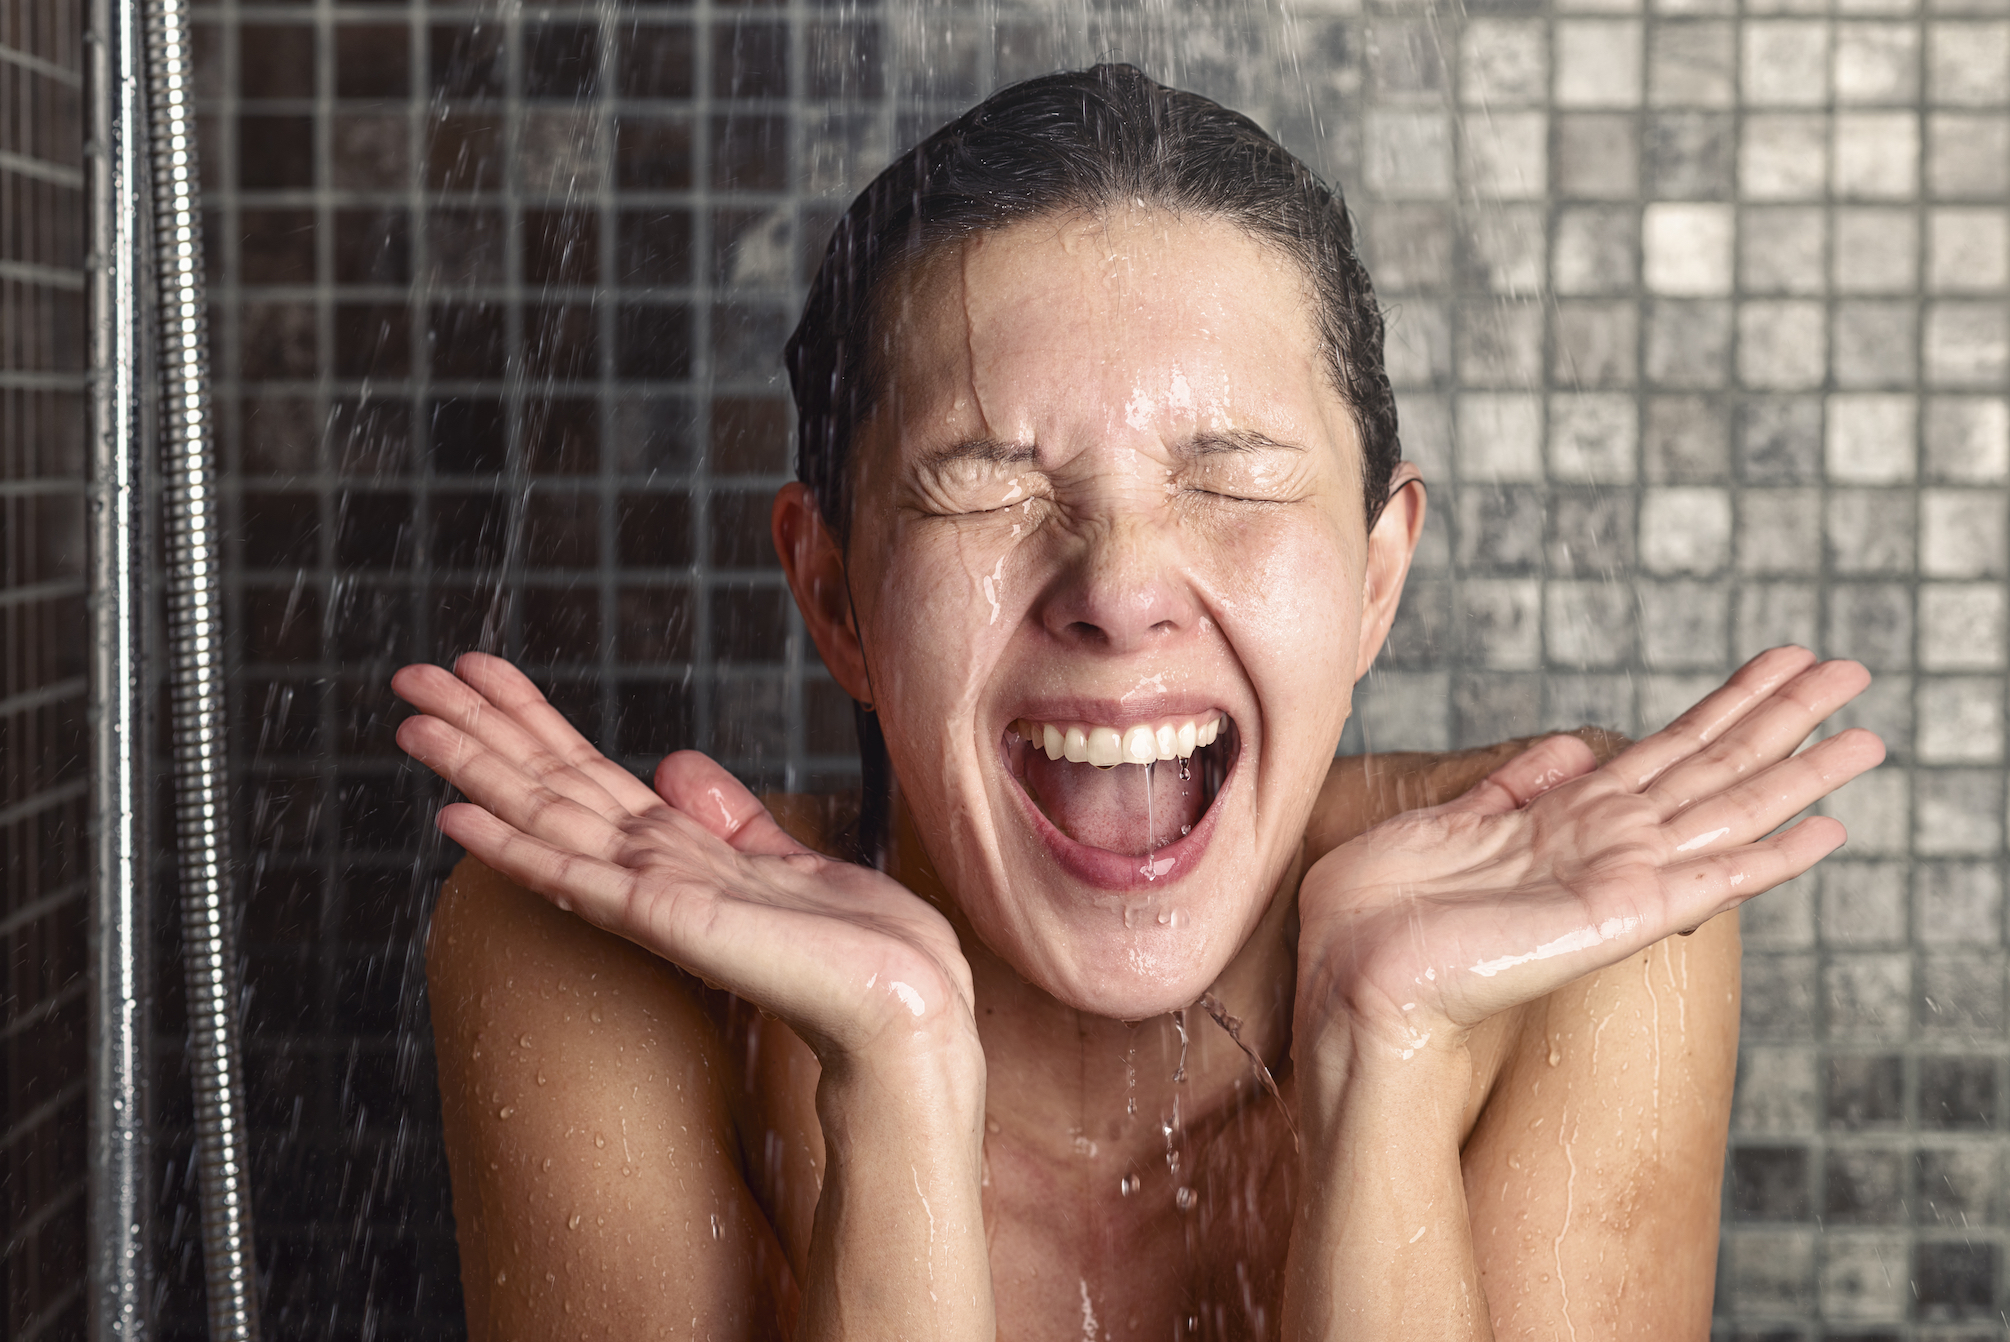 Scientists are finding increasing health benefits from having a quick blast of cold water, which can help boost the immune system.